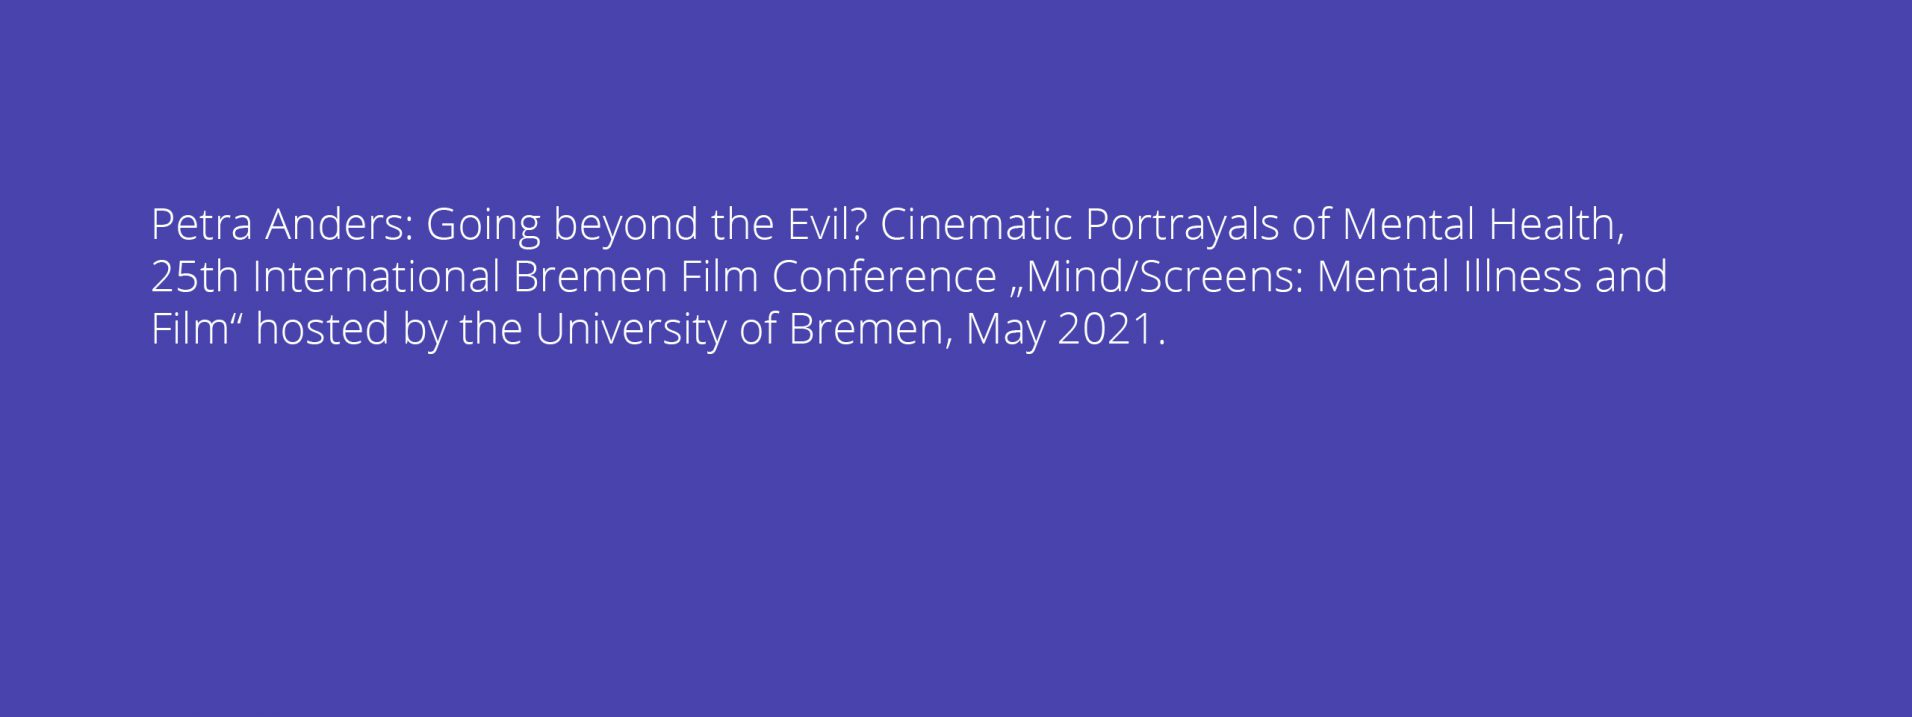 """Petra Anders: Going beyond the Evil? Cinematic Portrayals of Mental Health, 25th International Bremen Film Conference """"Mind/Screens: Mental Illness and Film"""" hosted by the University of Bremen, May 2021."""